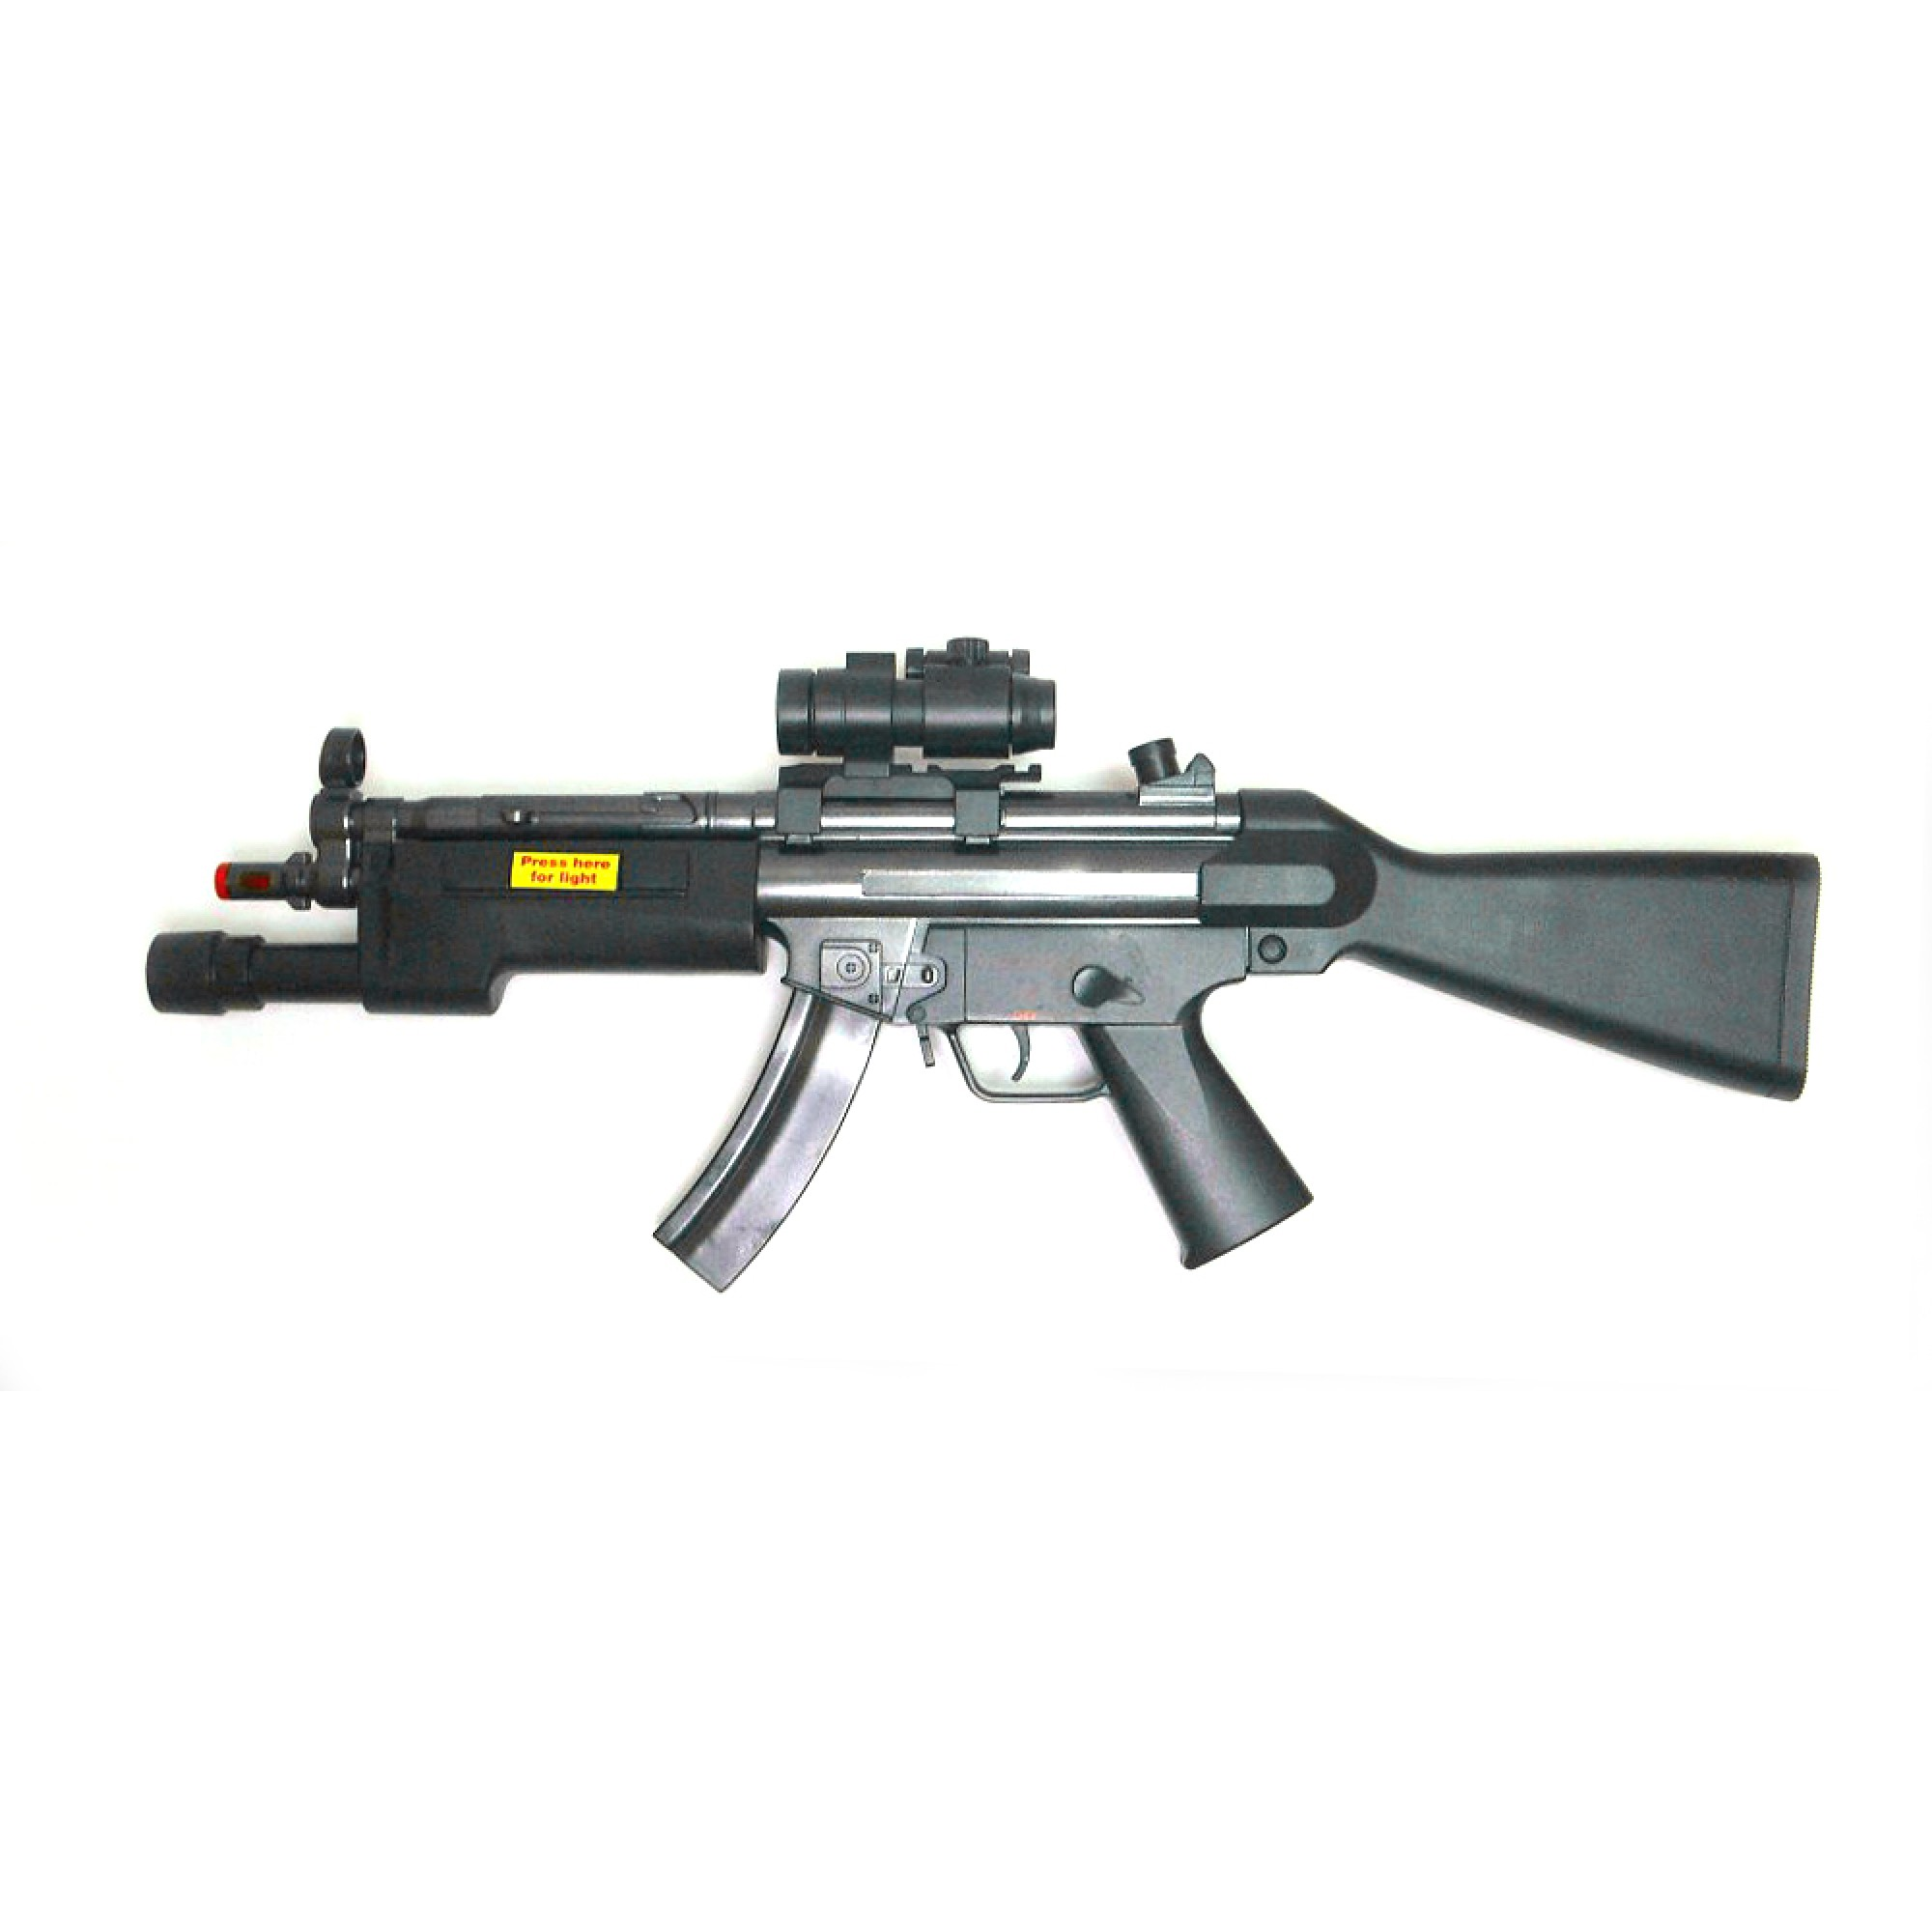 MP5 A4 W/Light, Sound, Vibration & Viewer